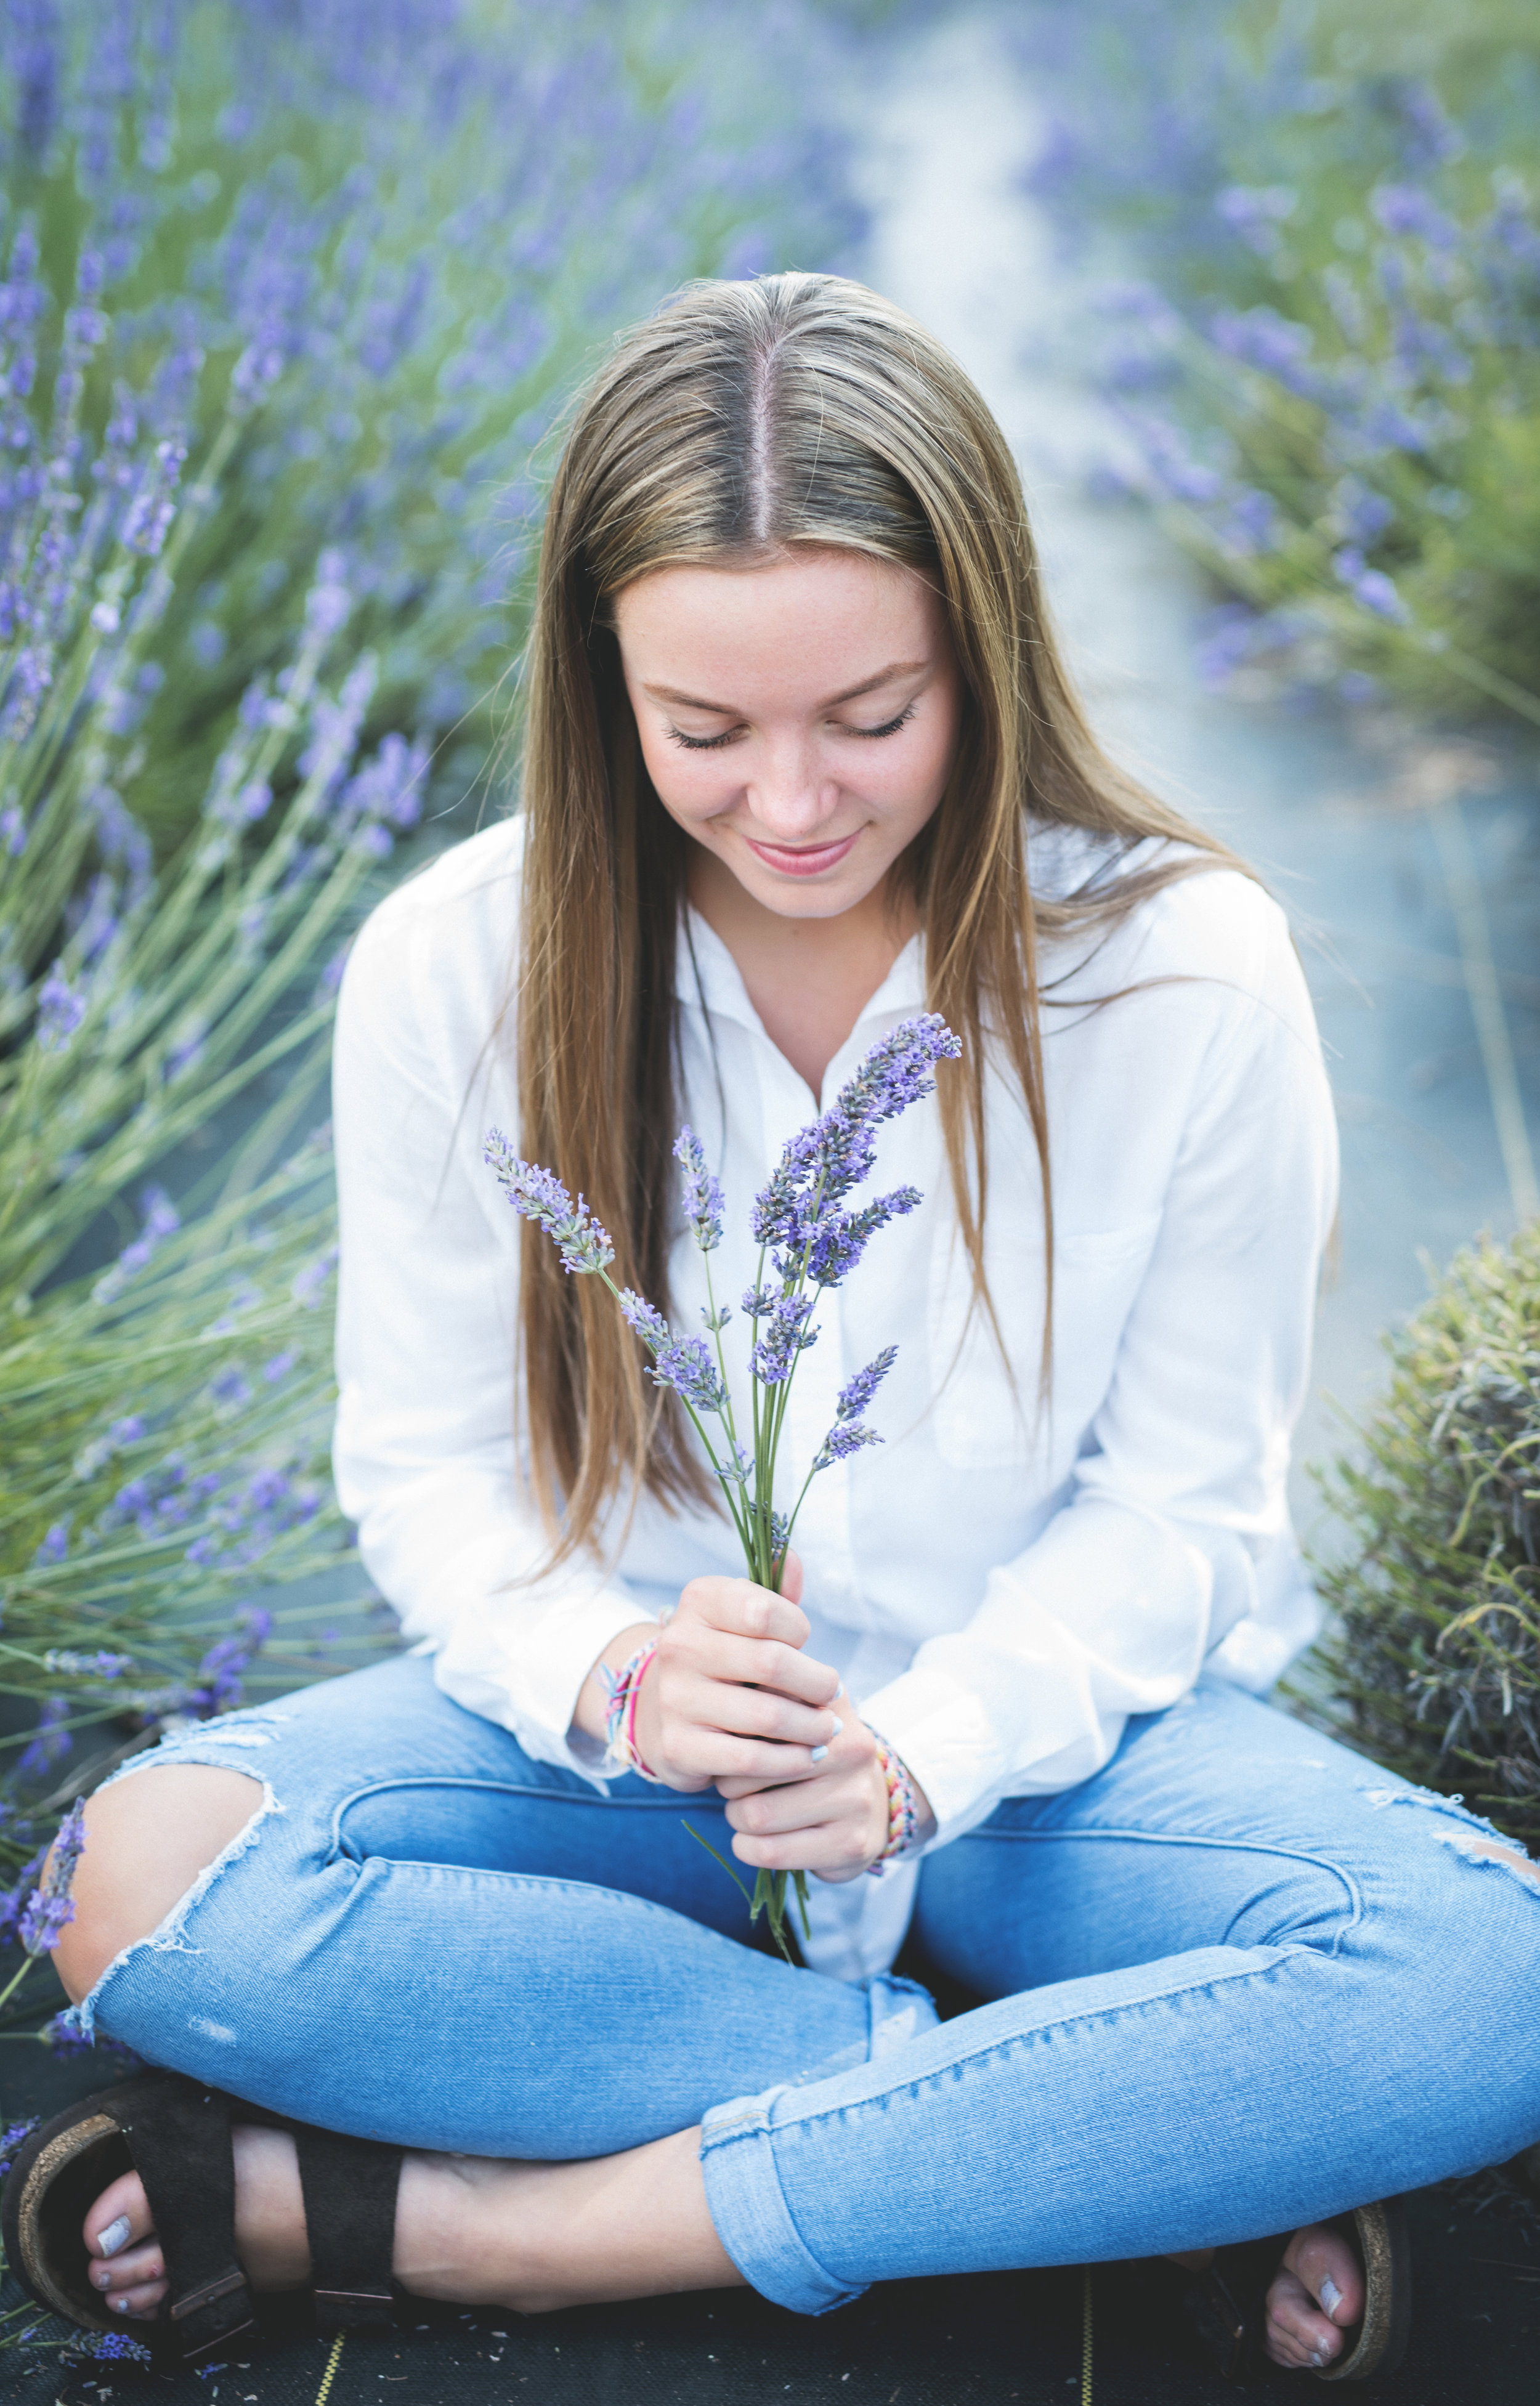 kristin grover images snofalls lavender field, sarah, senior model team. Mt. Si high school